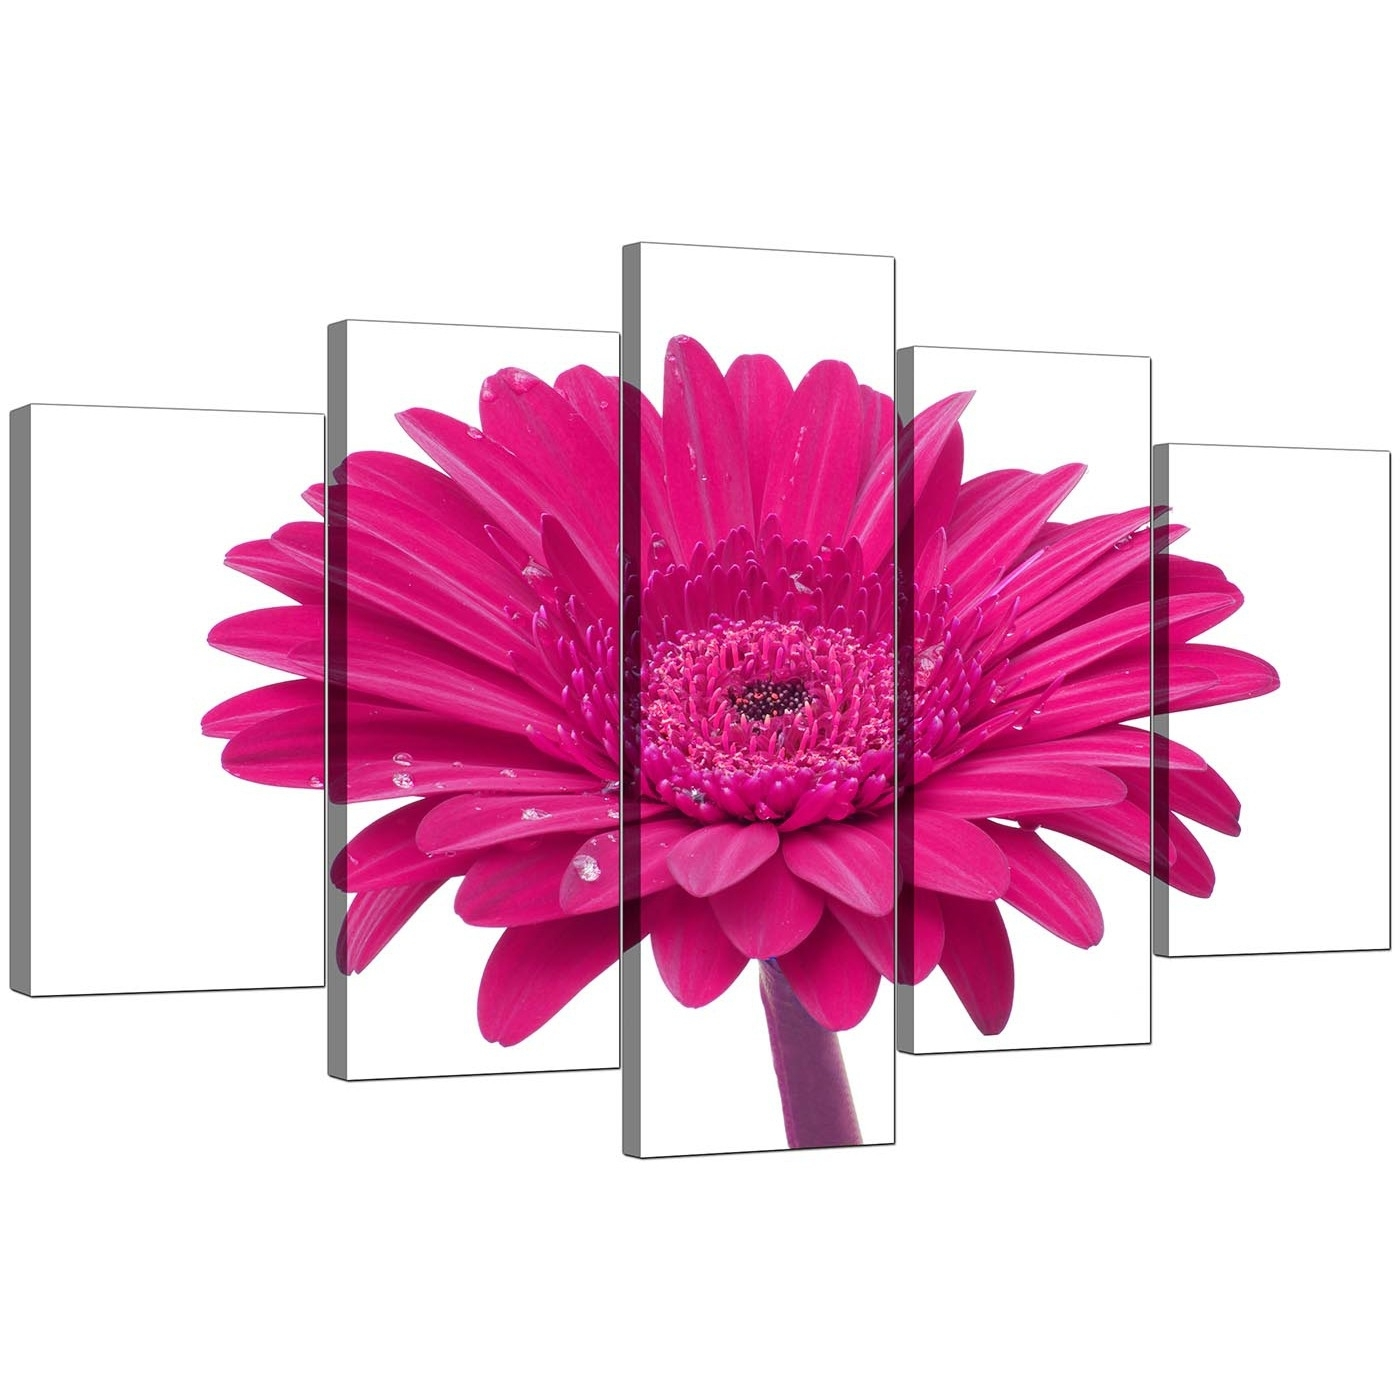 Extra Large Flower Canvas Wall Art 5 Piece In Pink Regarding Best And Newest Pink Canvas Wall Art (View 10 of 15)